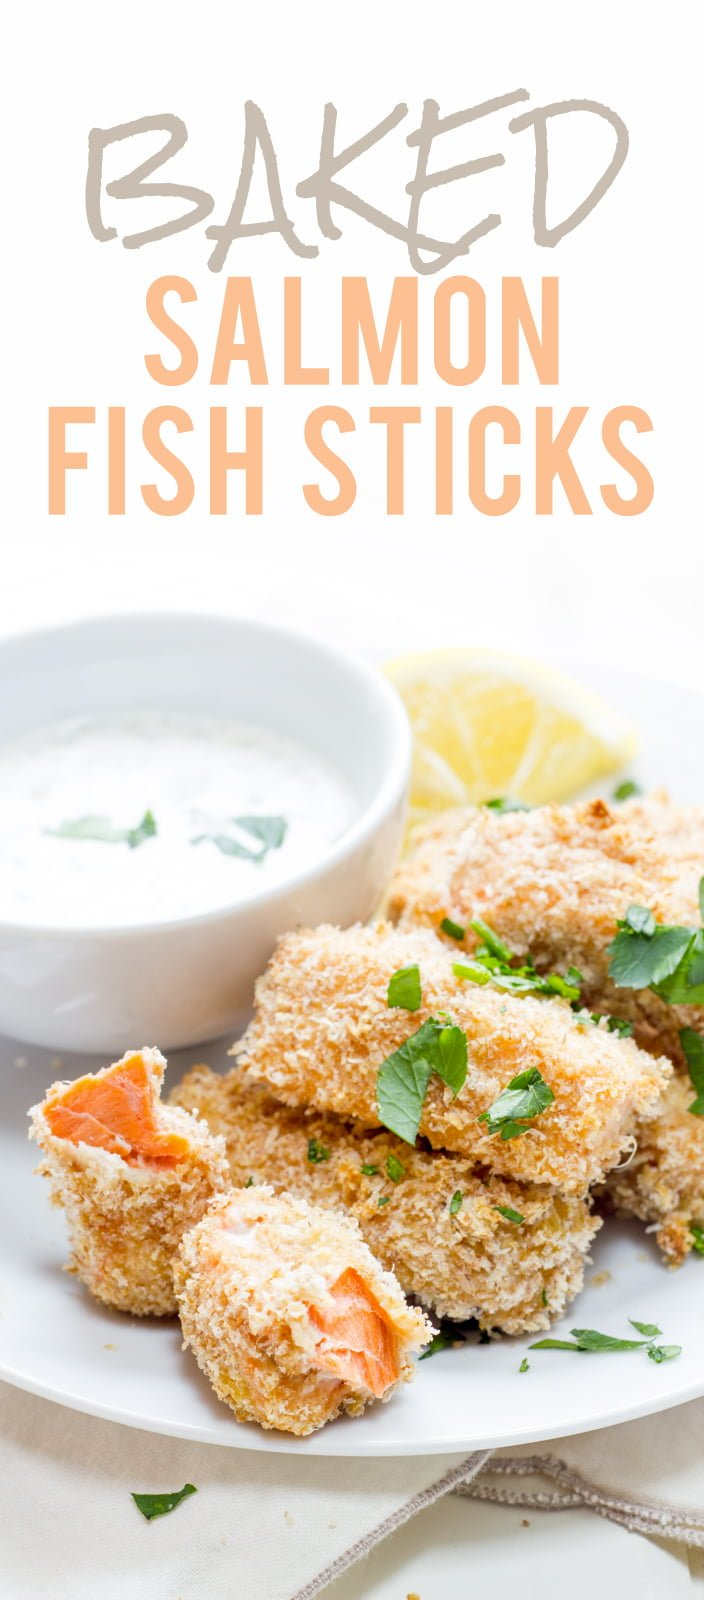 Baked salmon fish sticks wholefully for Salmon fish sticks